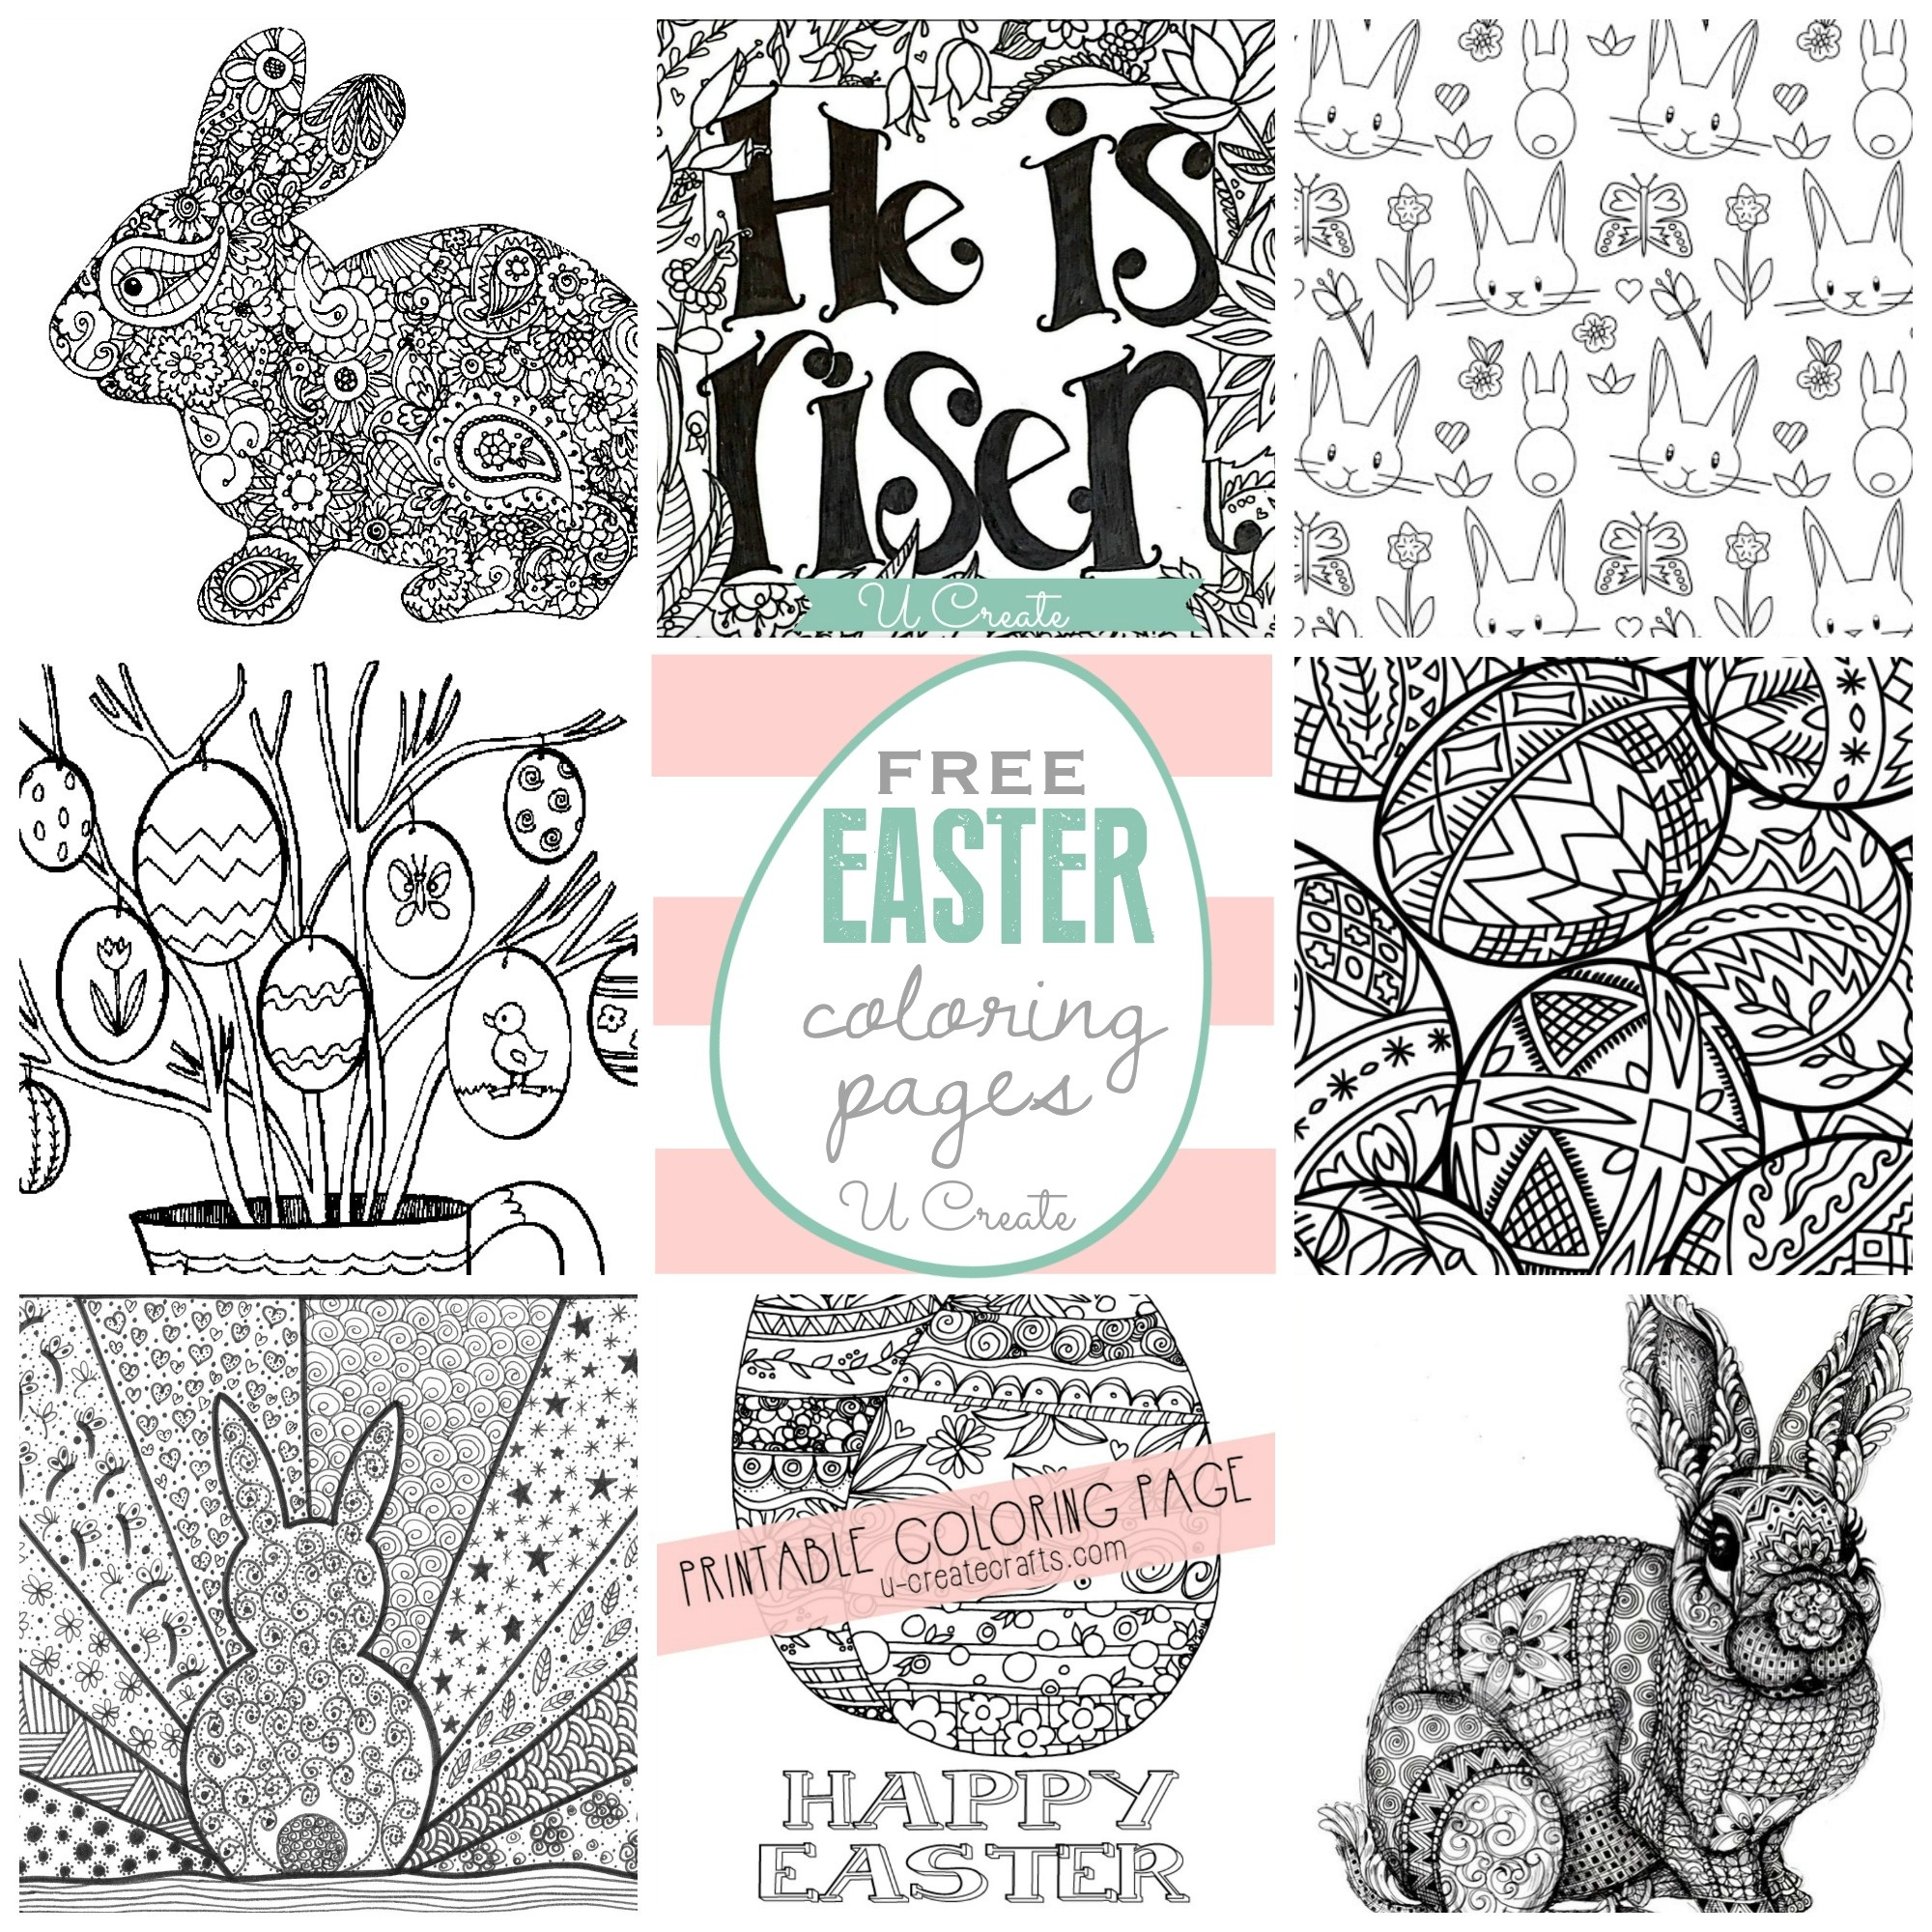 Free Easter Coloring Pages - U Create - Free Easter Color Pages Printable